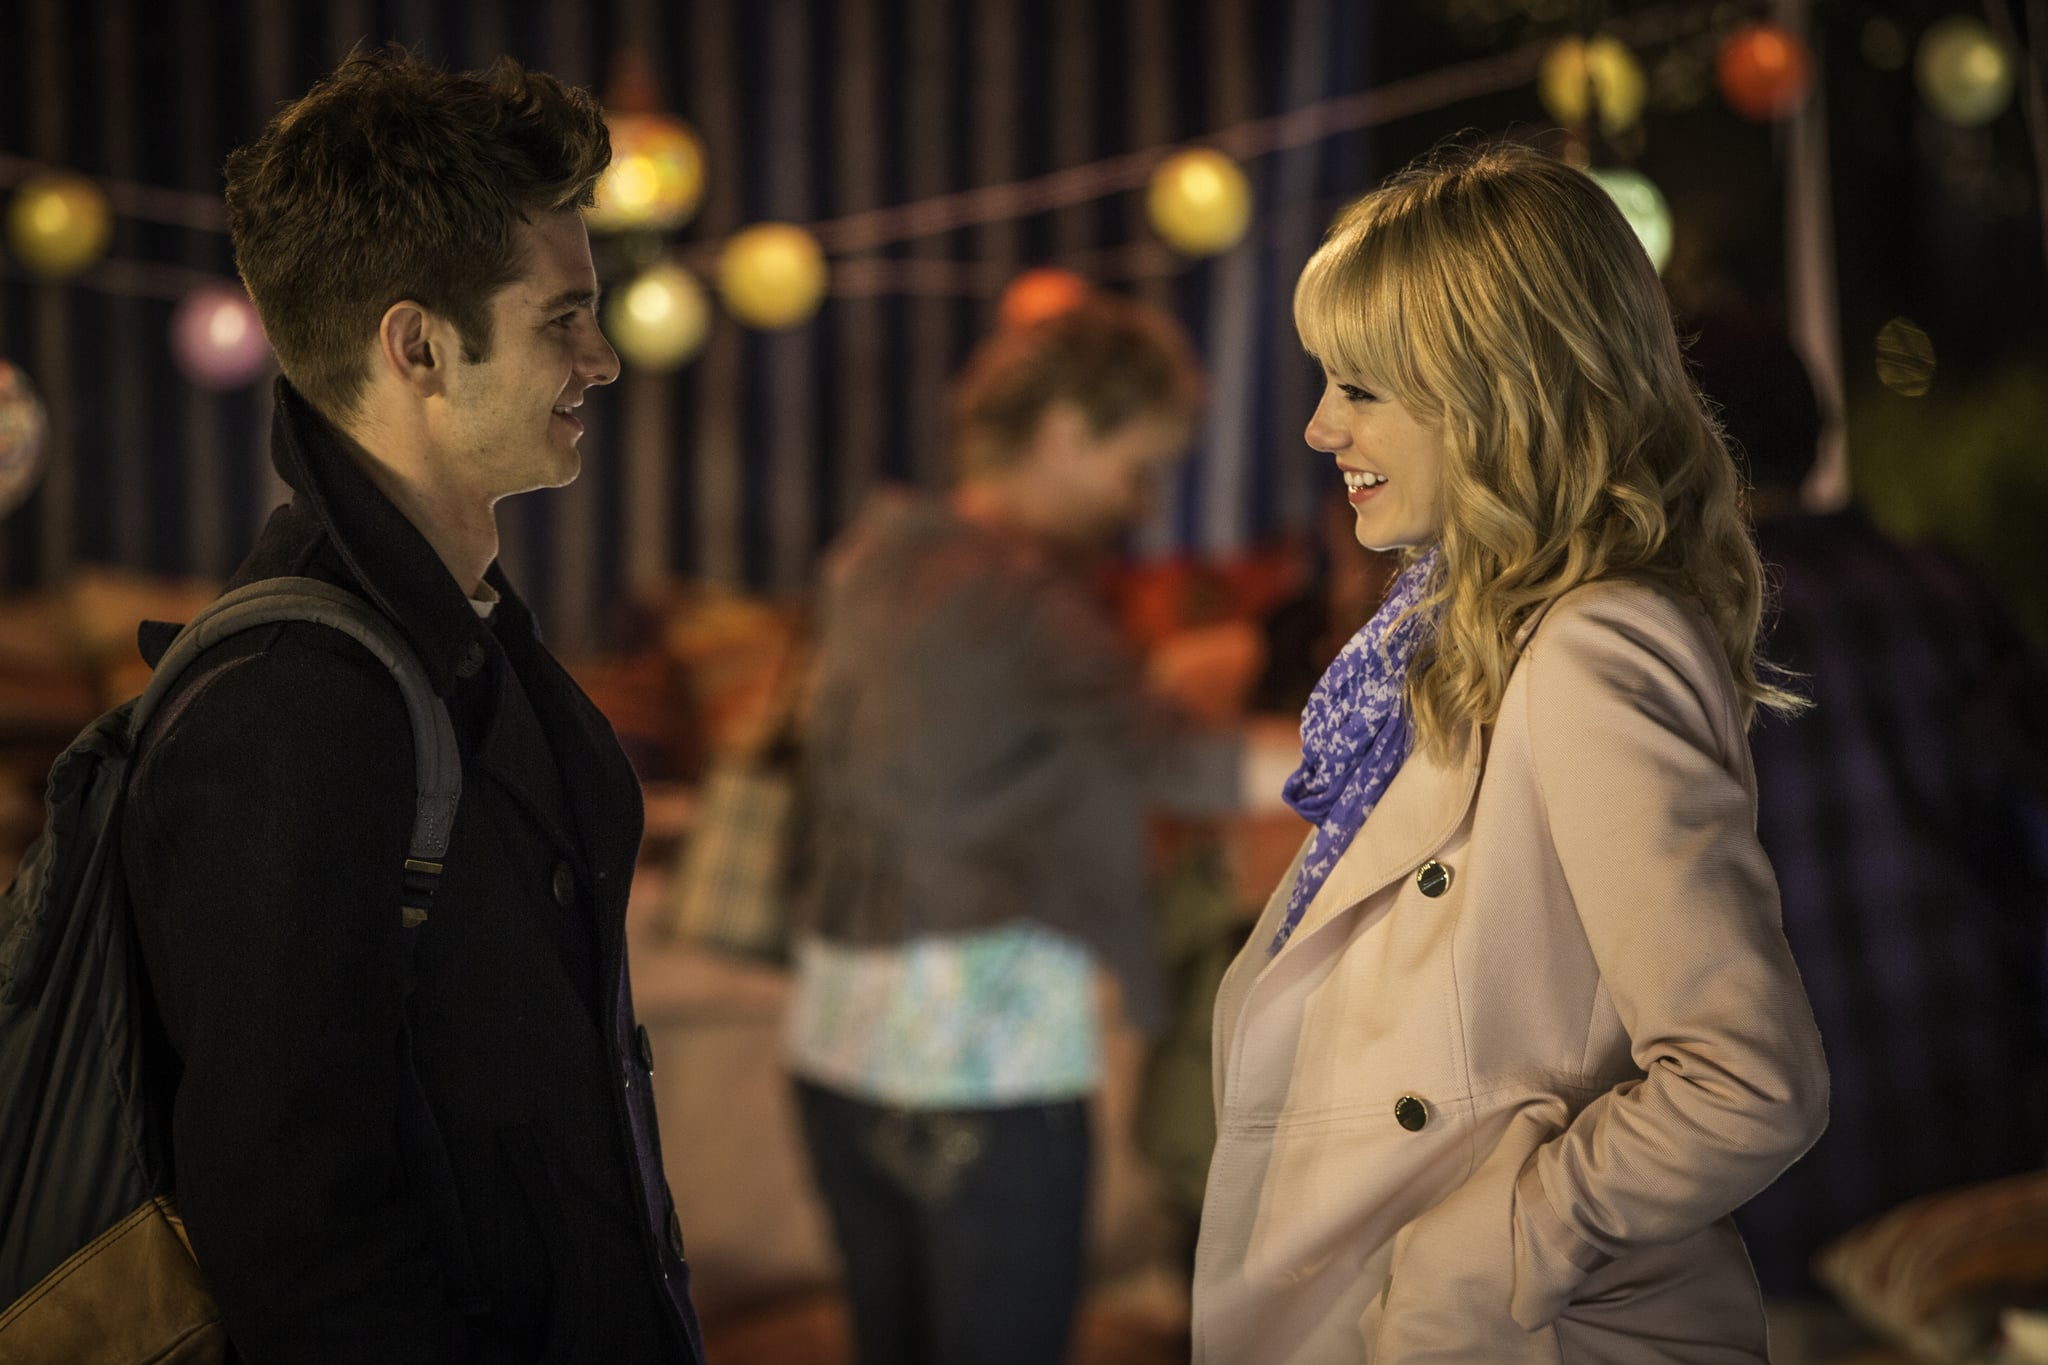 Andrew Garfield as Peter Parker and Emma Stone as Gwen Stacy  in The Amazing Spider-Man 2.